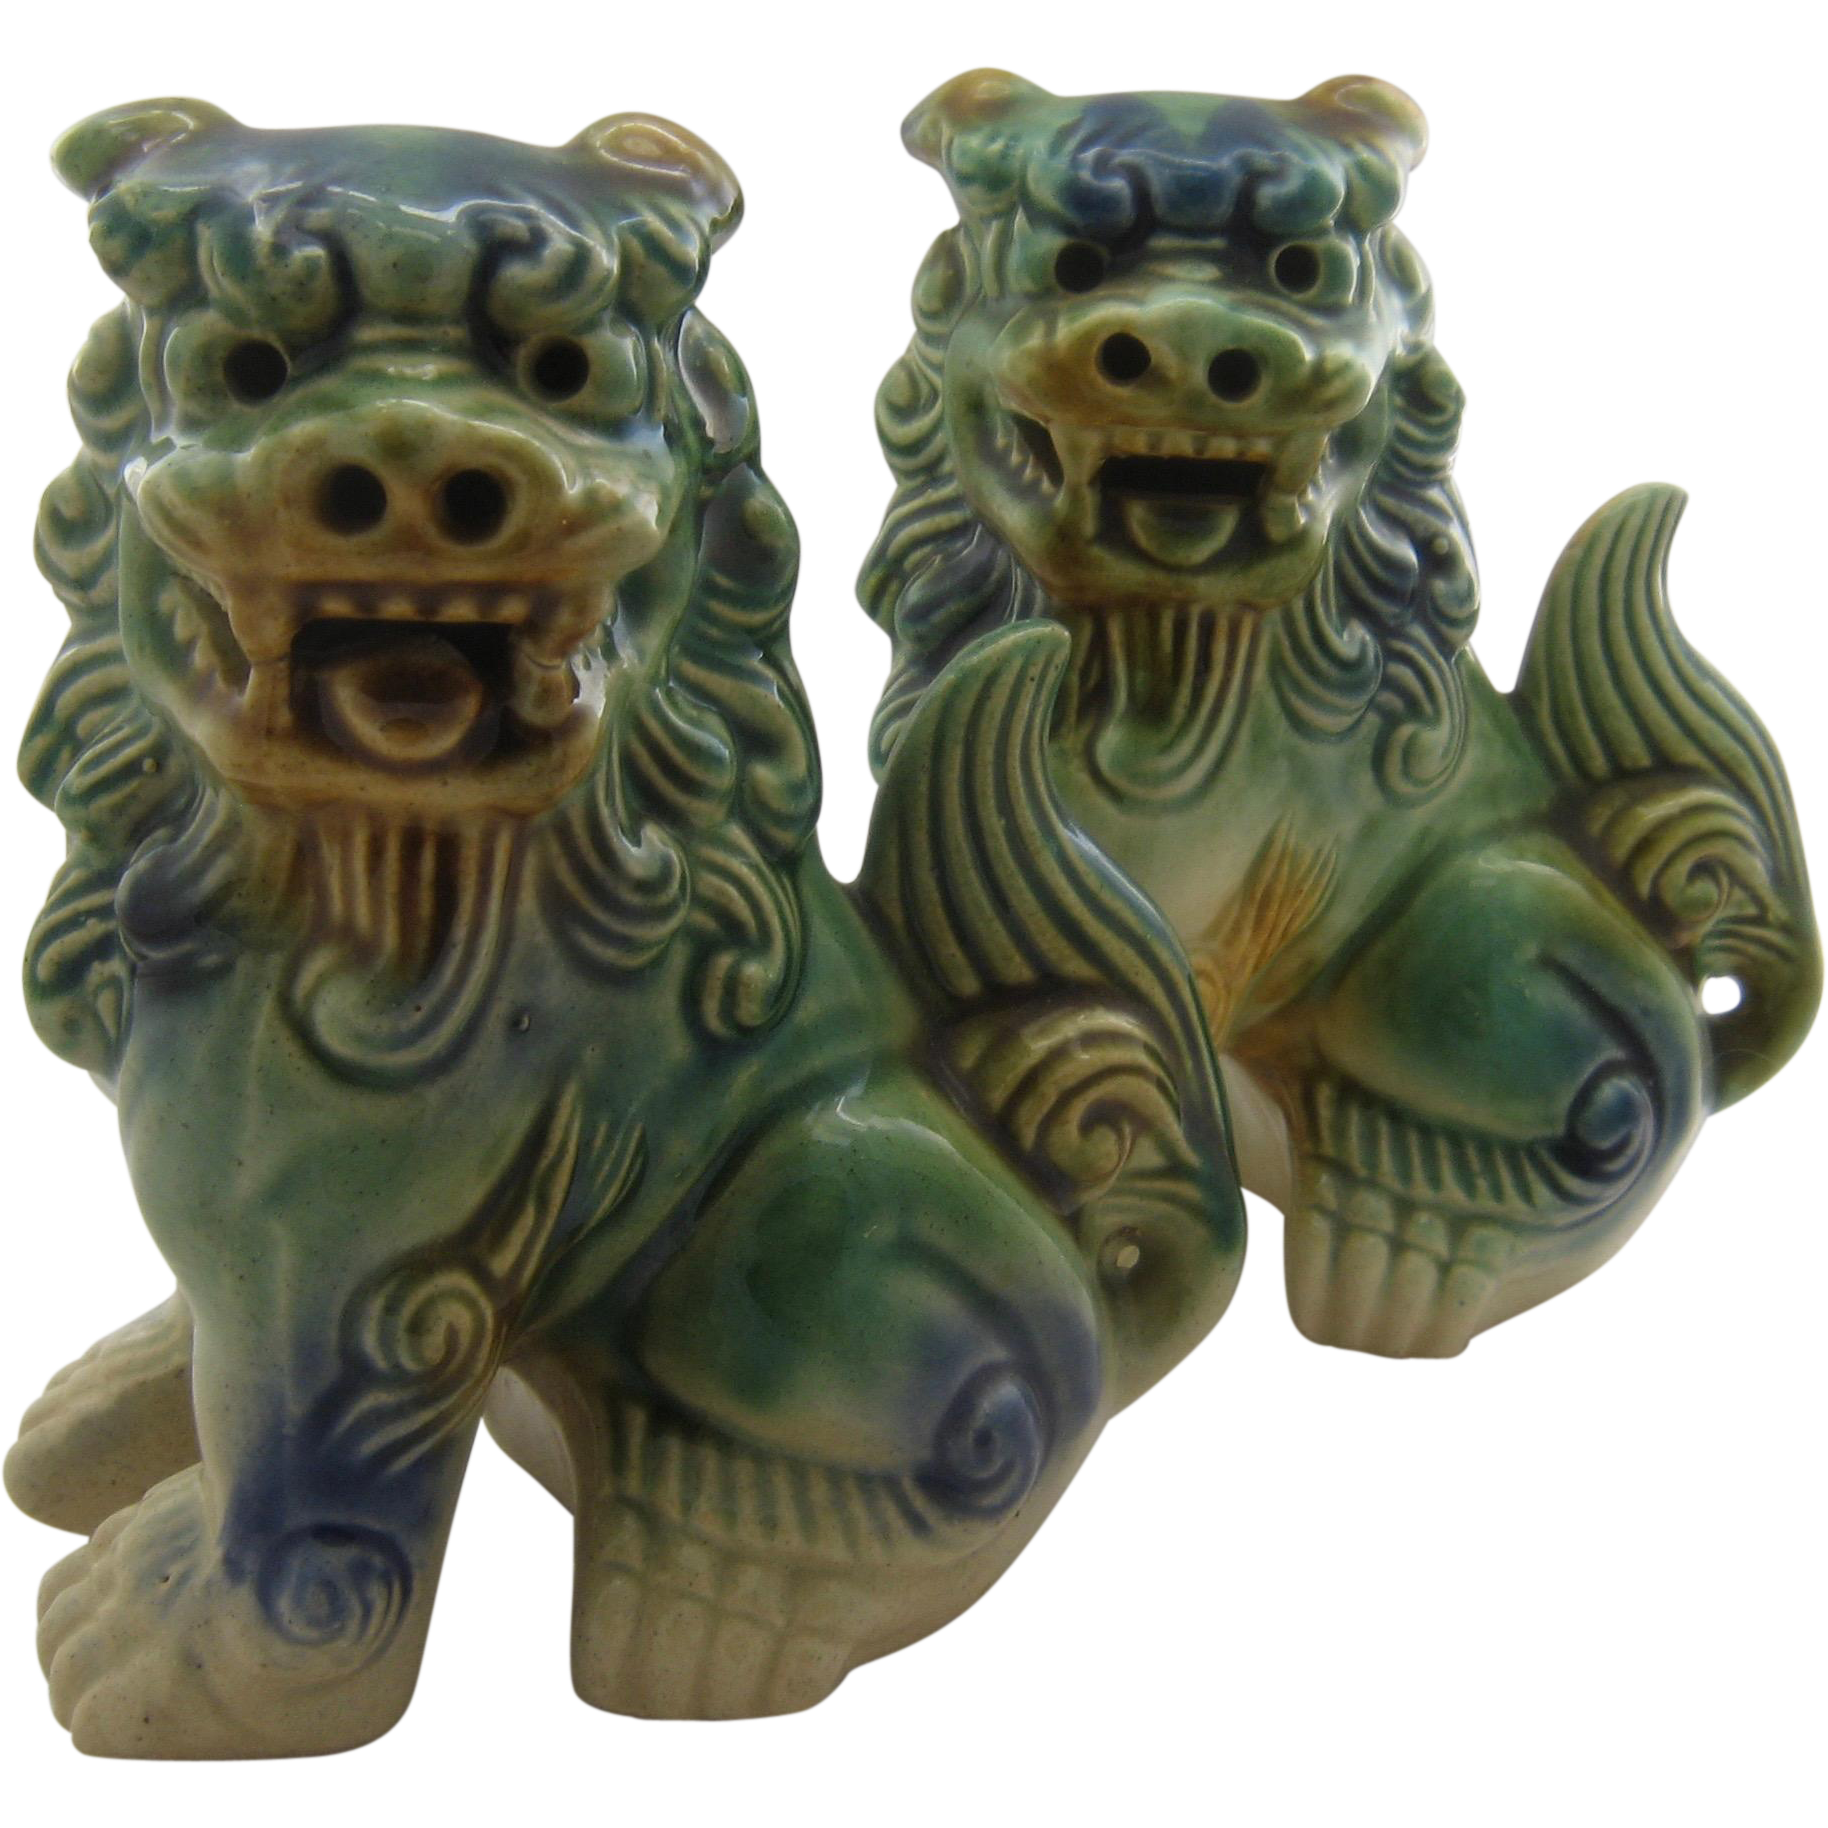 Two Vintage Chinese Ceramic Foo Dogs Majolica Glaze From